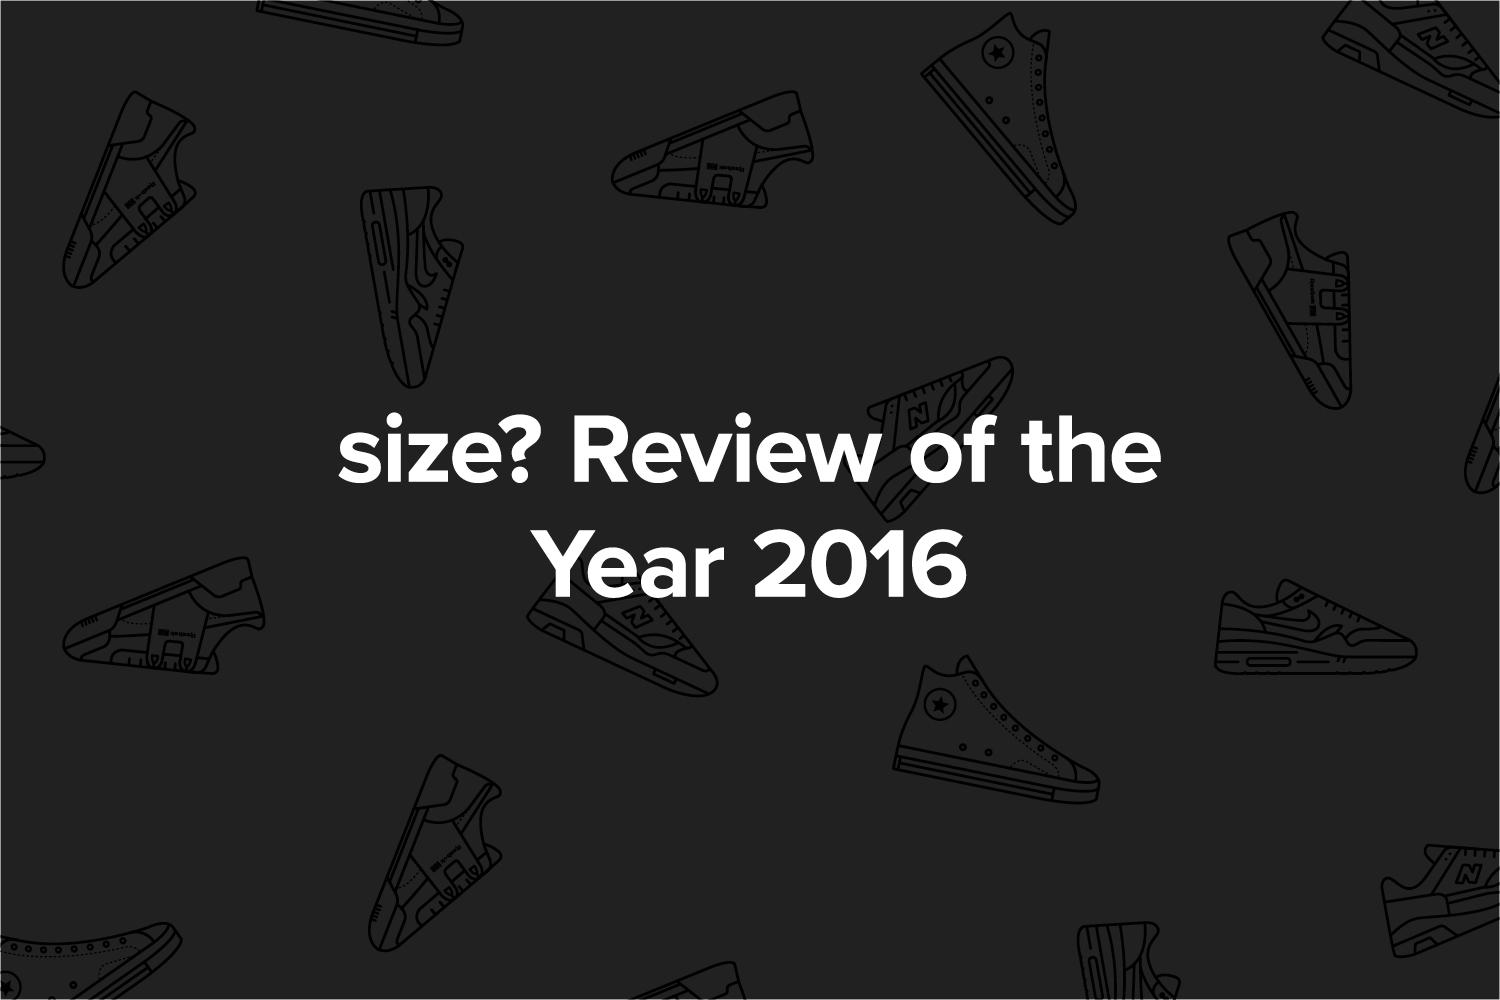 The size? Review of the Year 2016